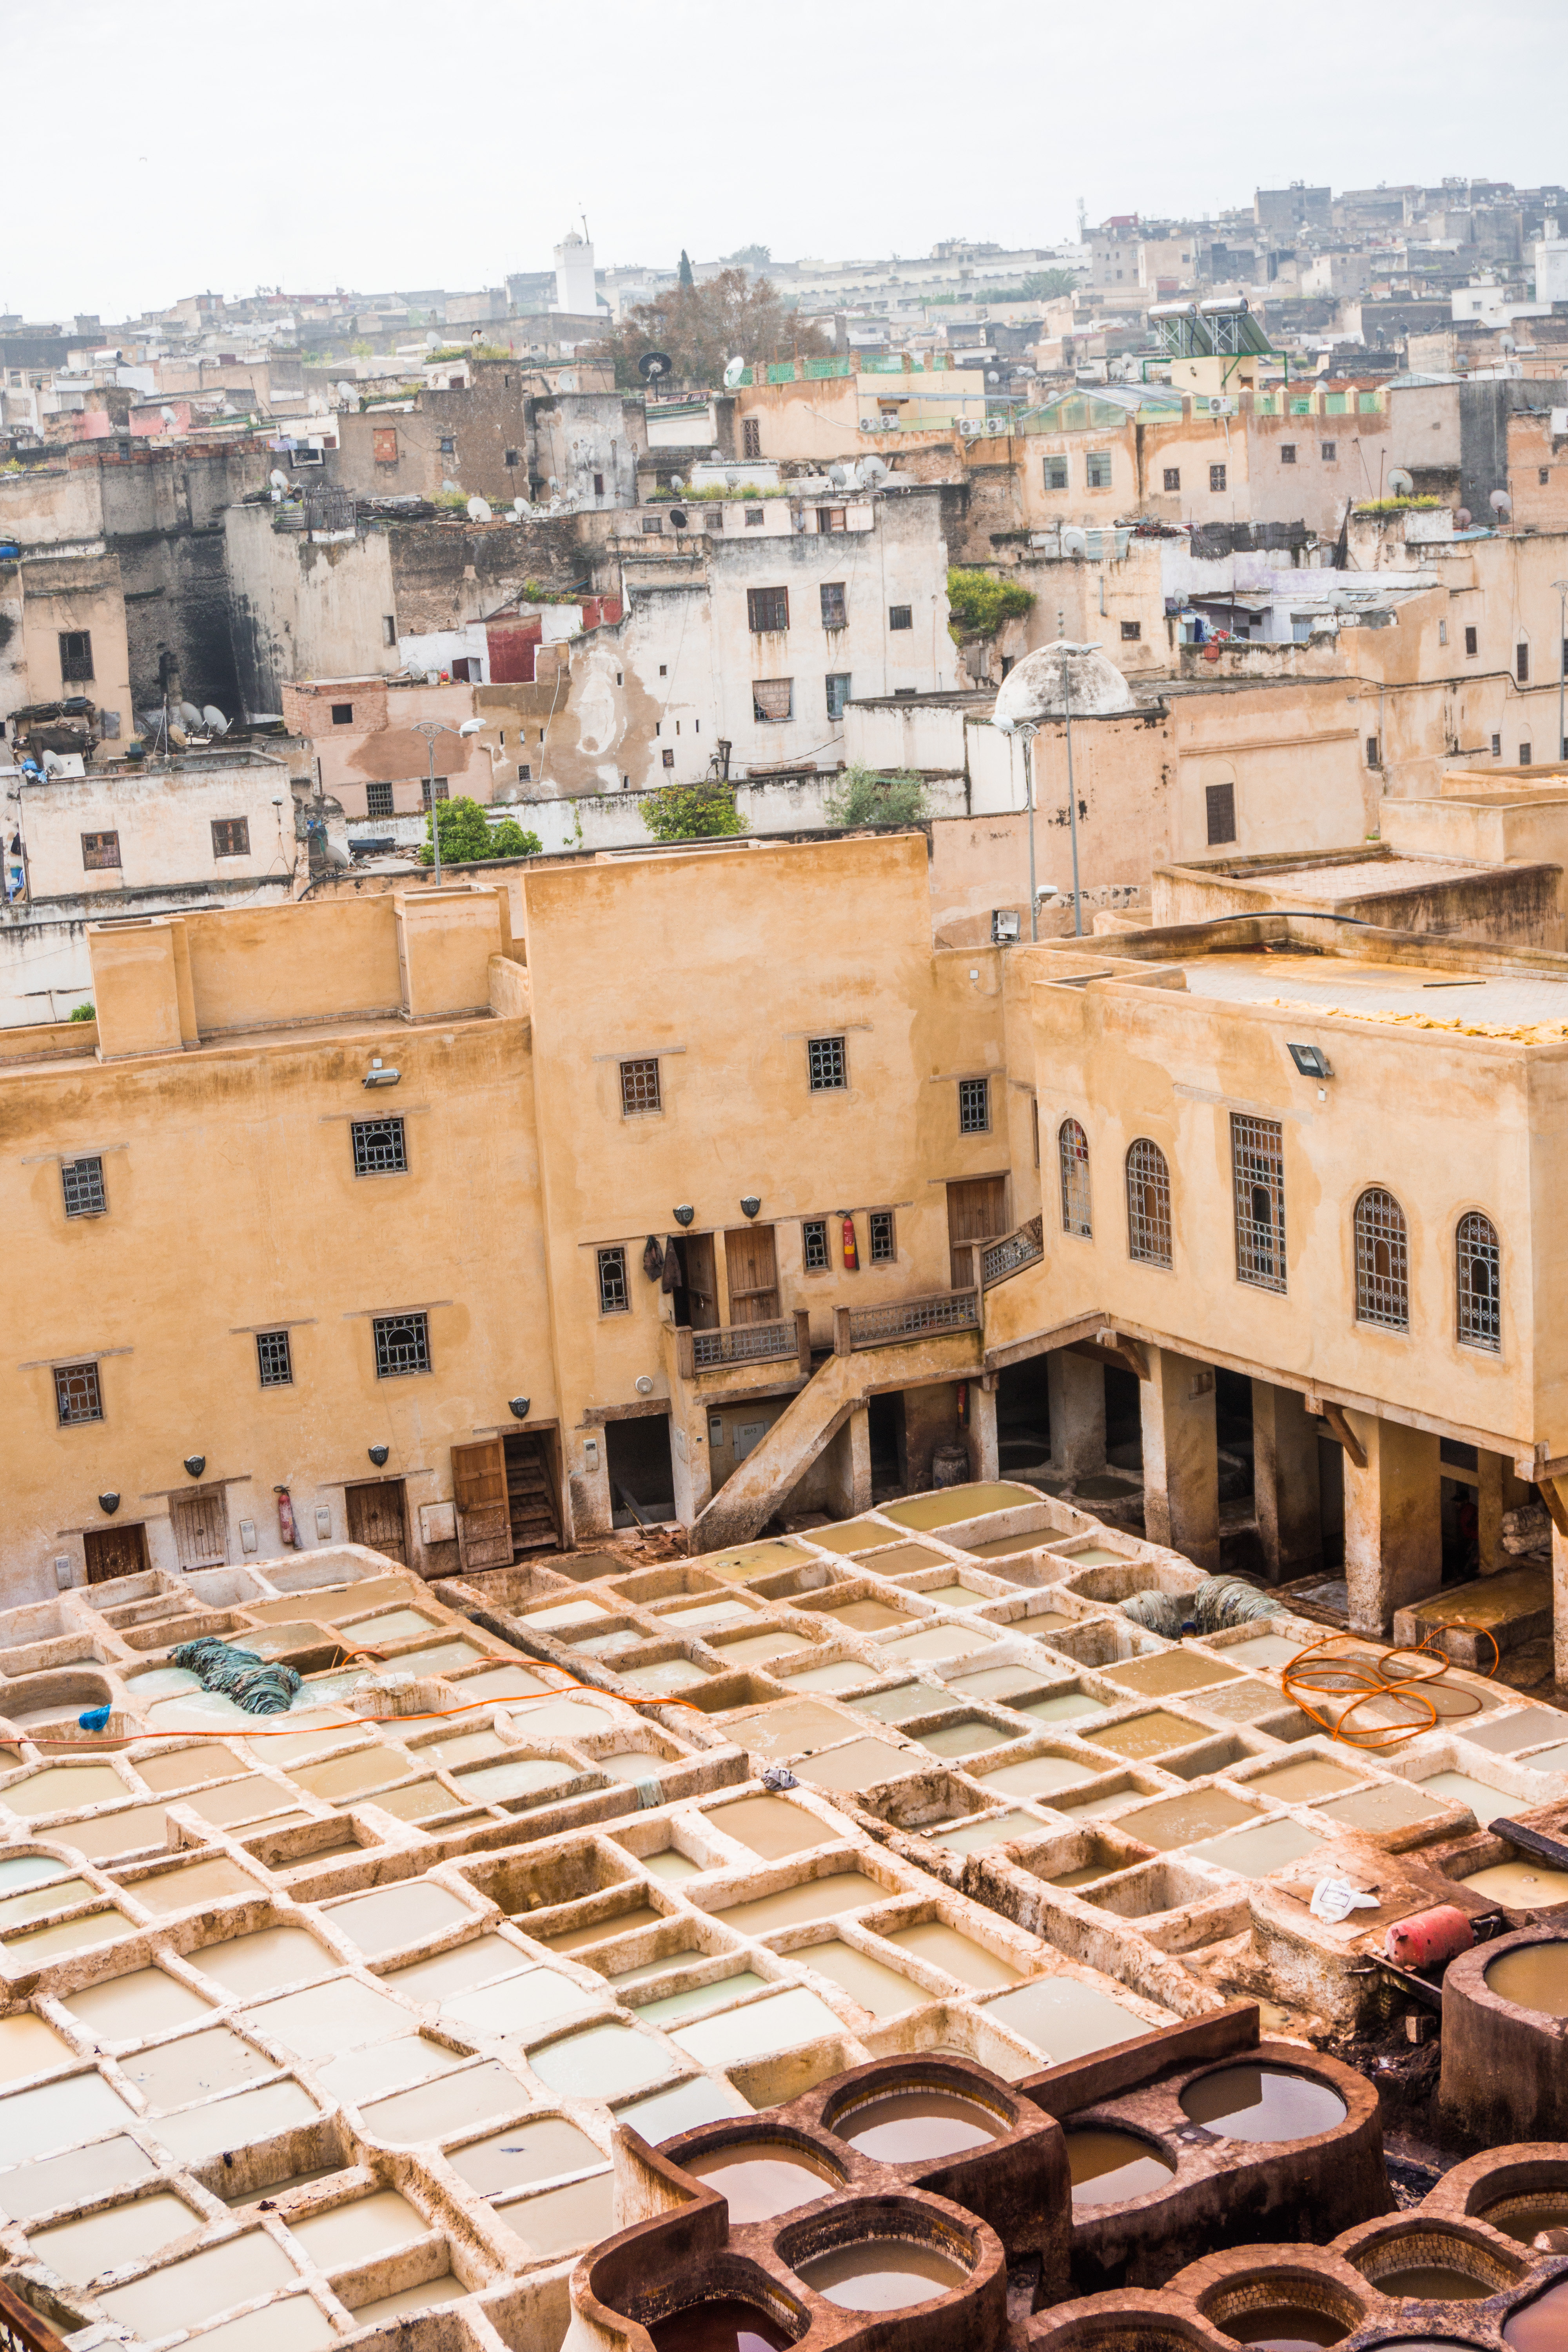 Visiting Fes, the best things to do - the tanneries at Shop 64